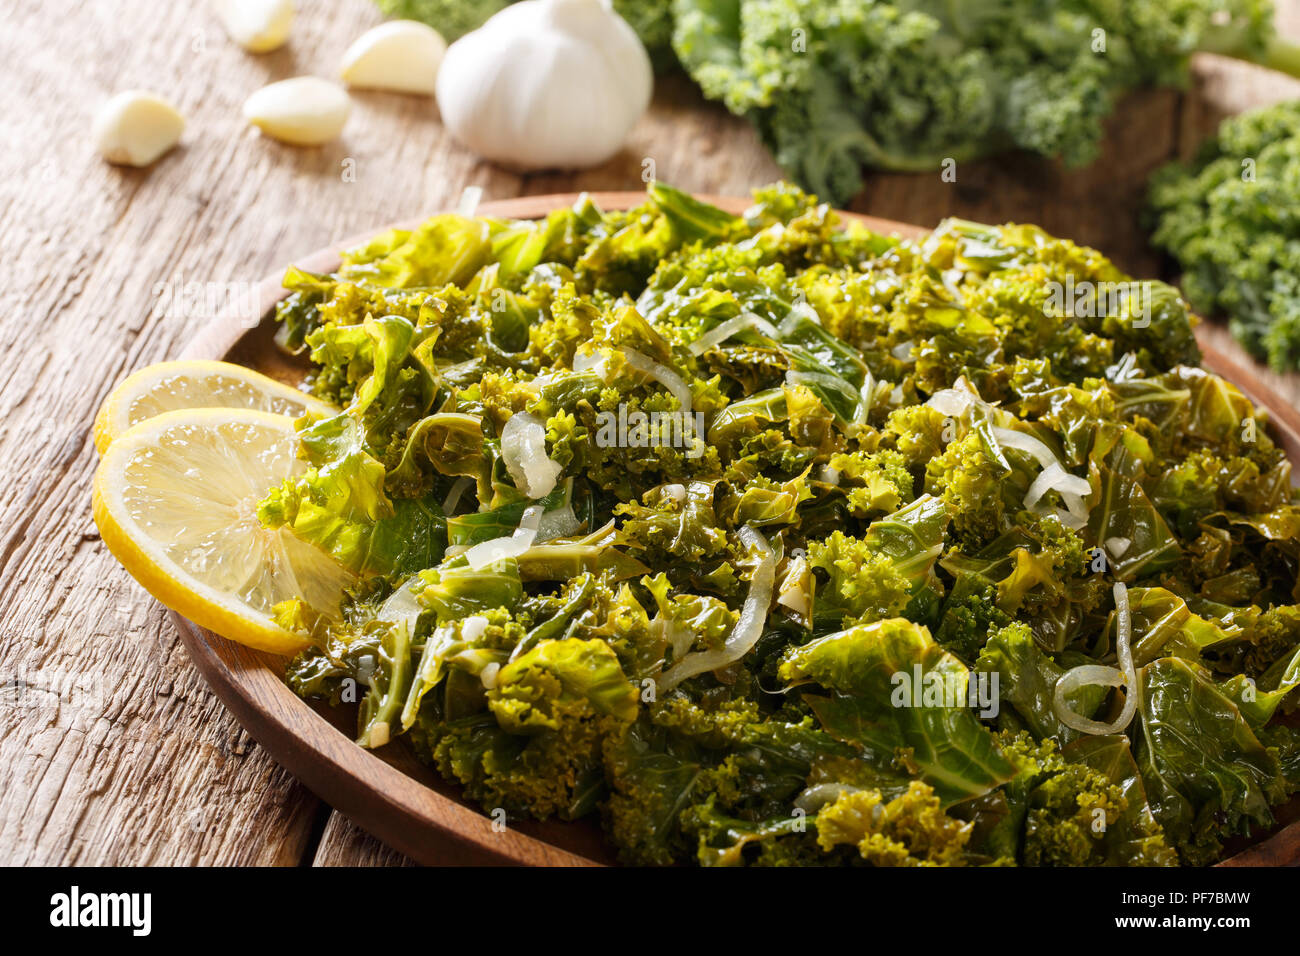 Delicious kale, onions, garlic and lemon close-up on a plate and ingredients on the table. horizontal - Stock Image